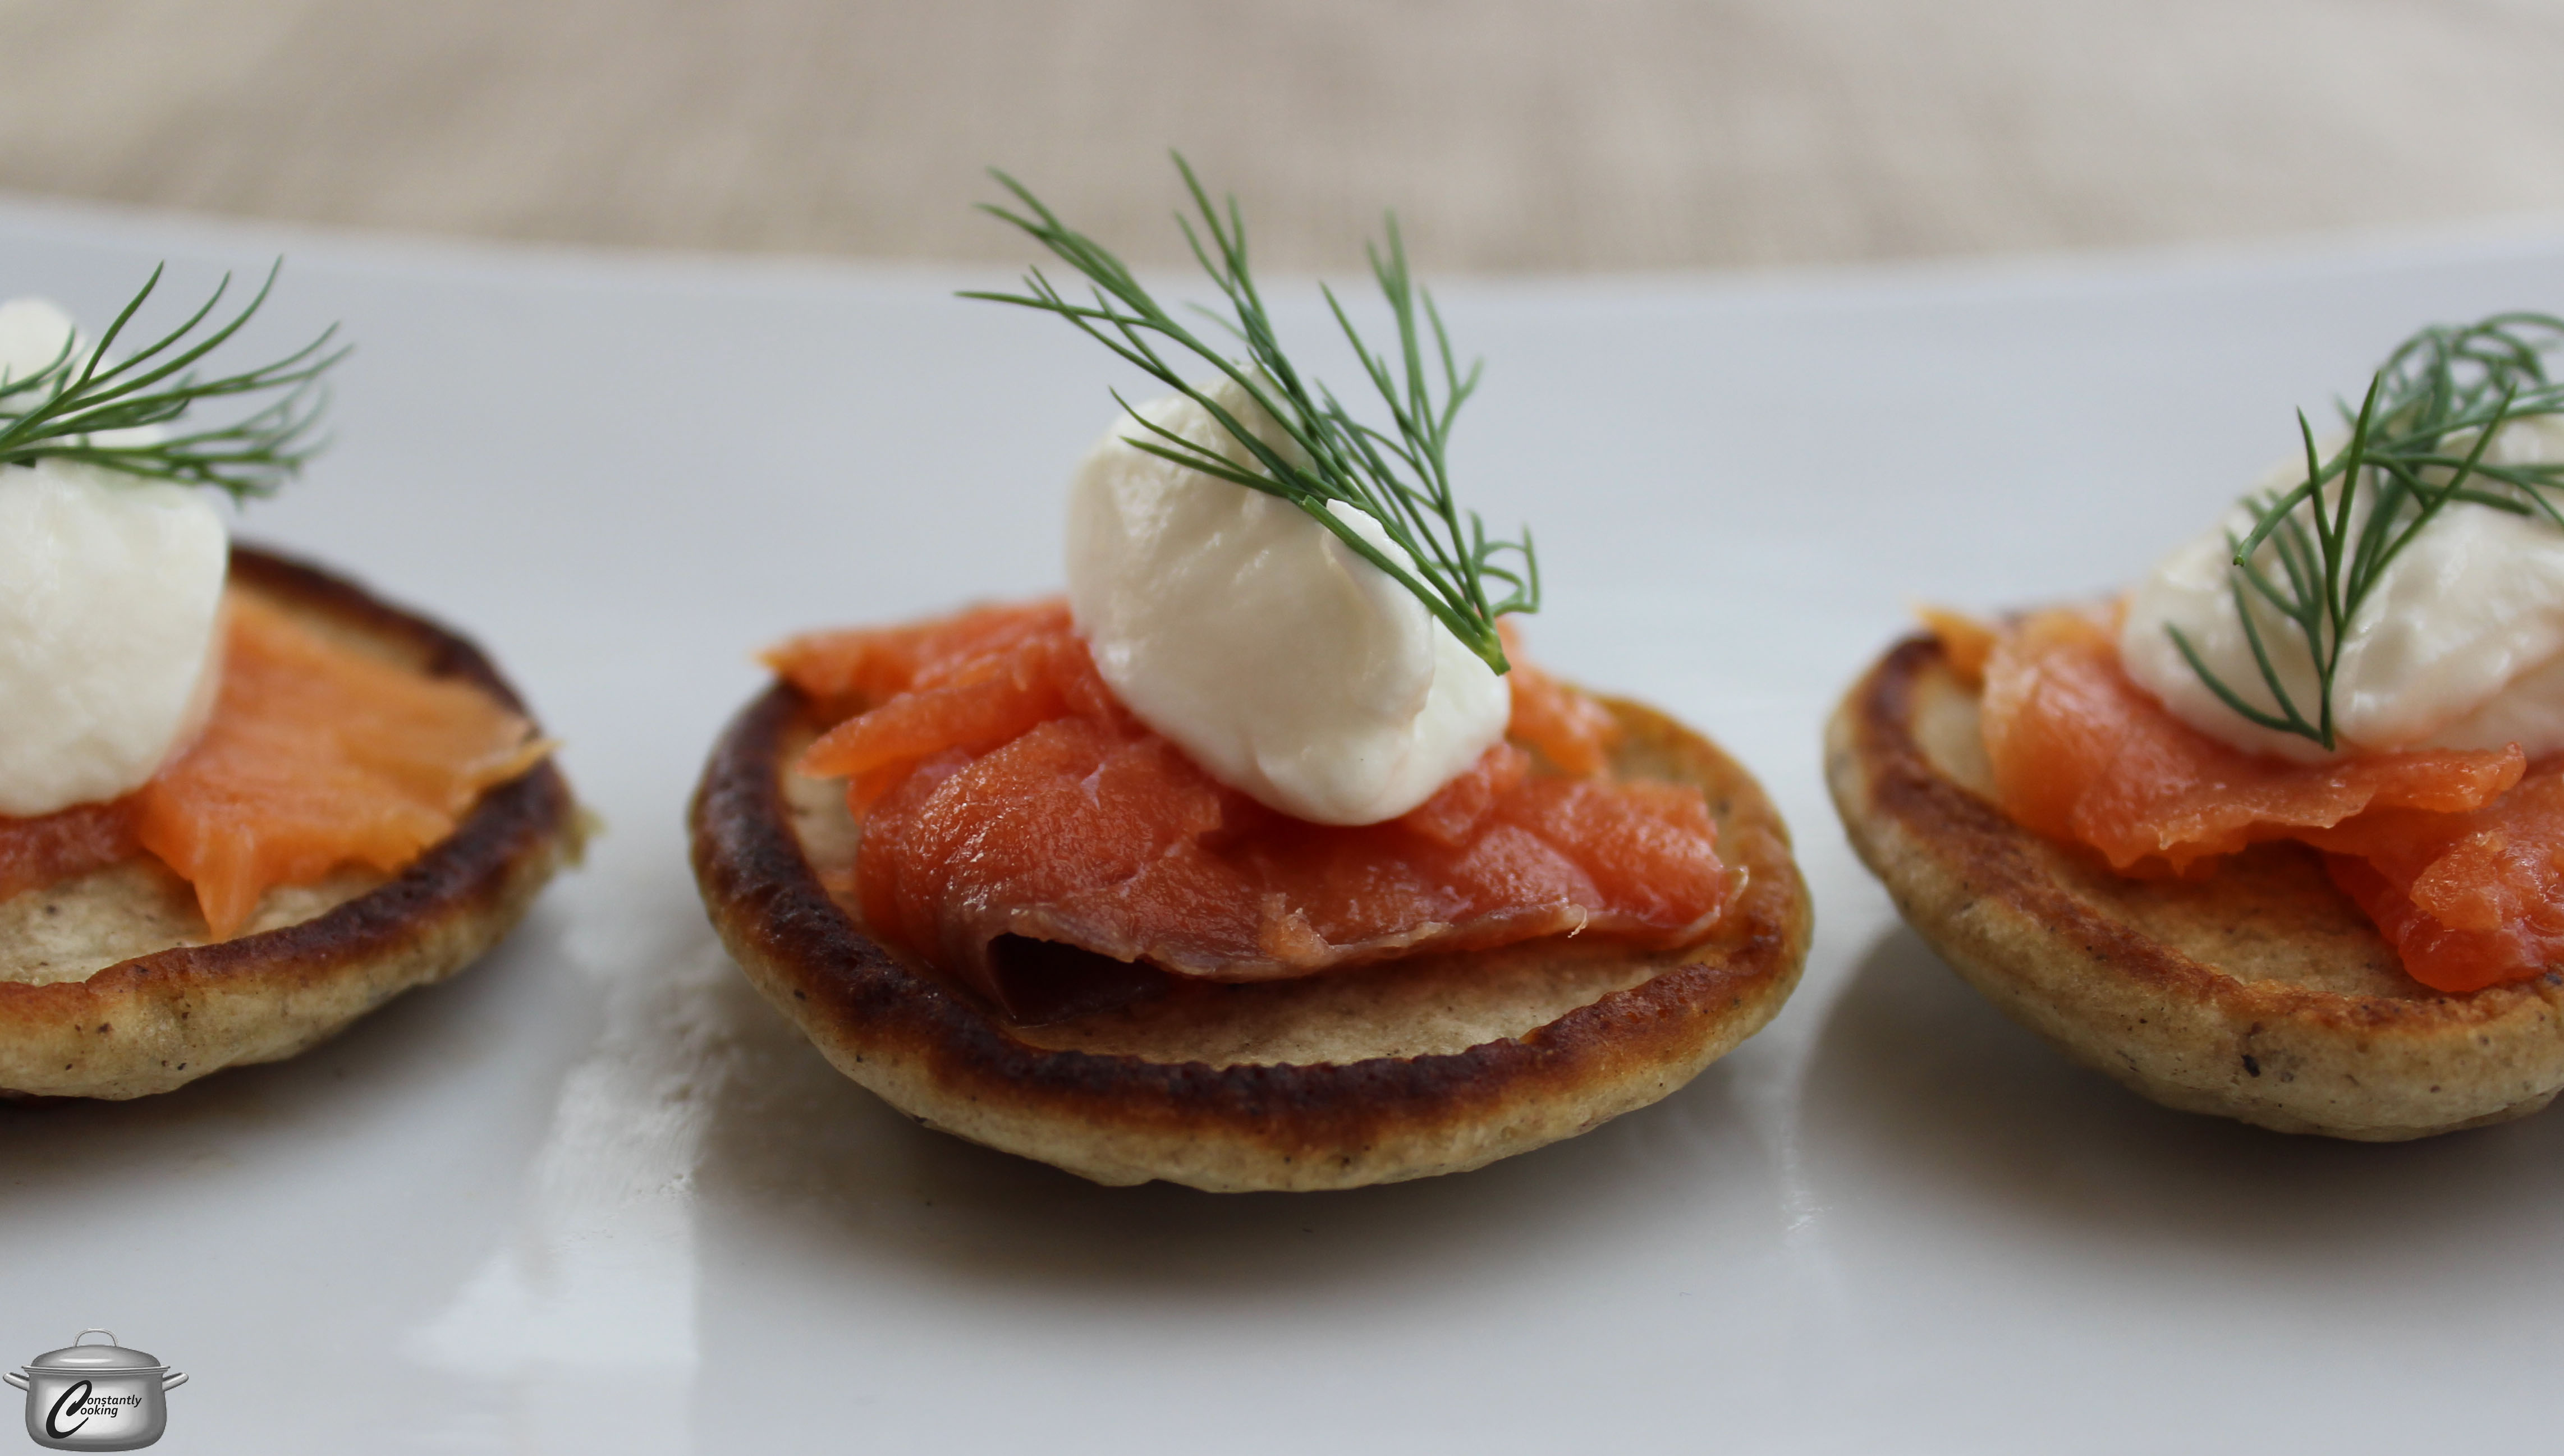 ... variety of toppings including smoked salmon, sour cream and caviar